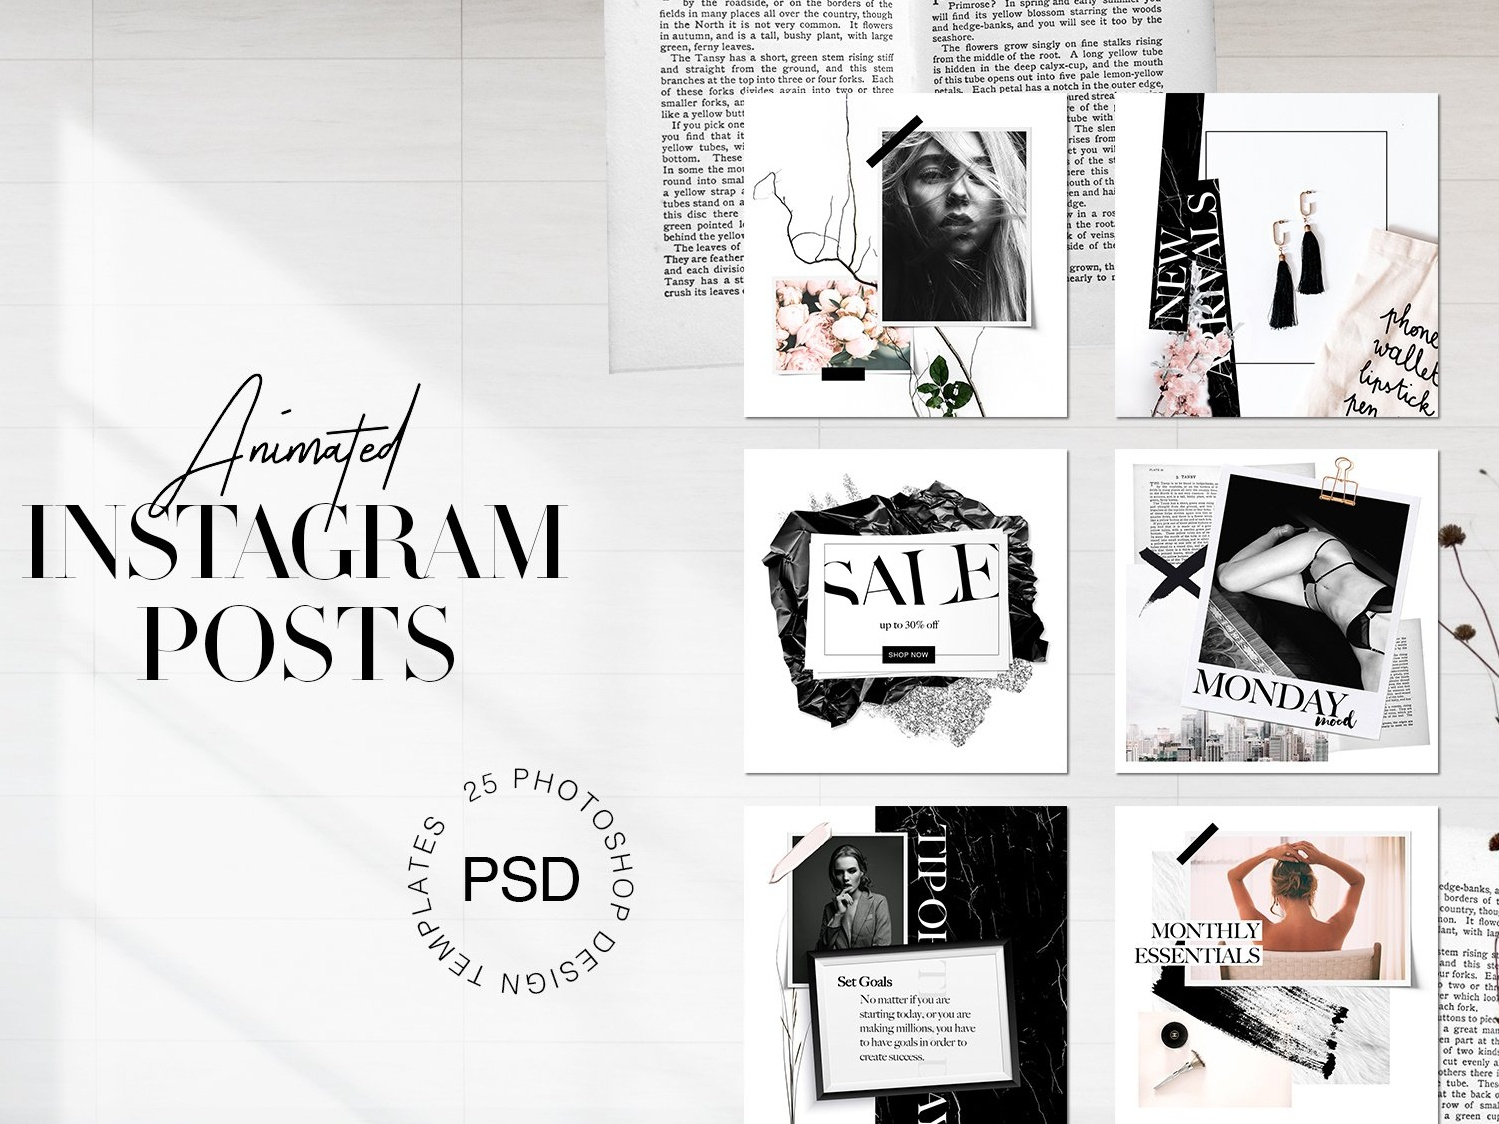 Classy Animated Instagram Posts by Social Media Templates on Dribbble